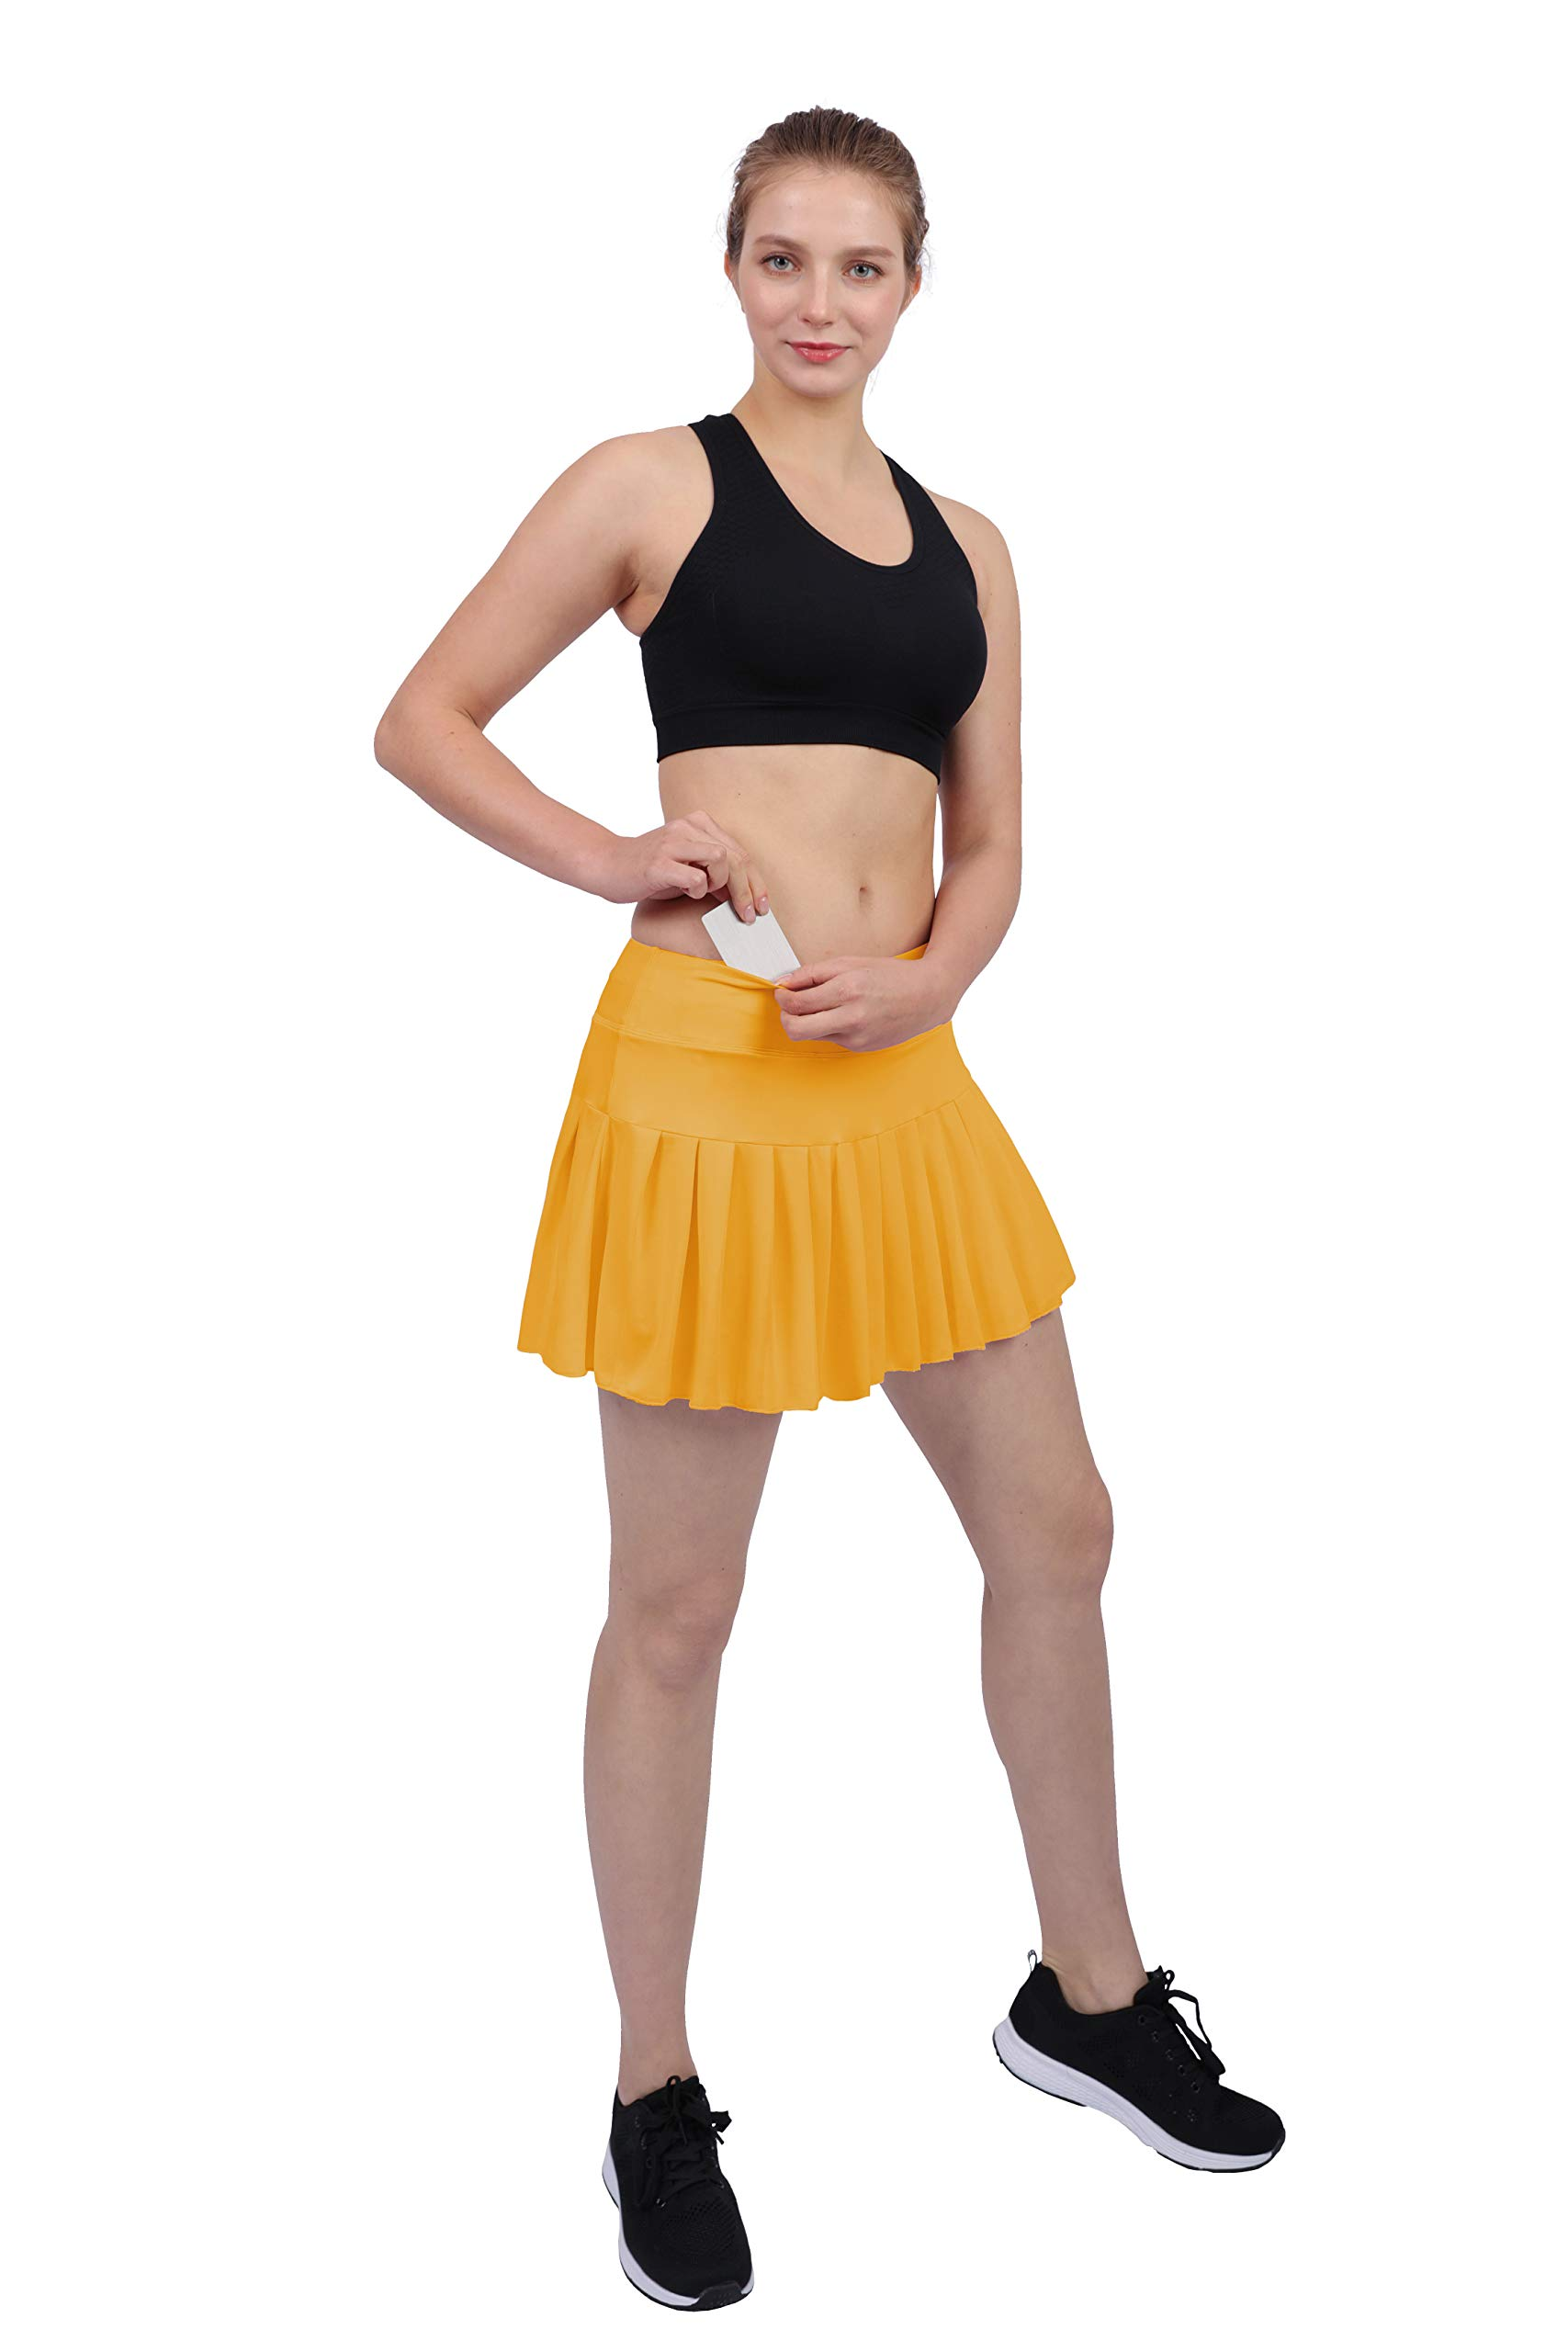 Womens Tennis Pleated Skorts Golf Workout High Waist Biult in Skirts Sports Active Wear with Pockets Yellow by HonourSex